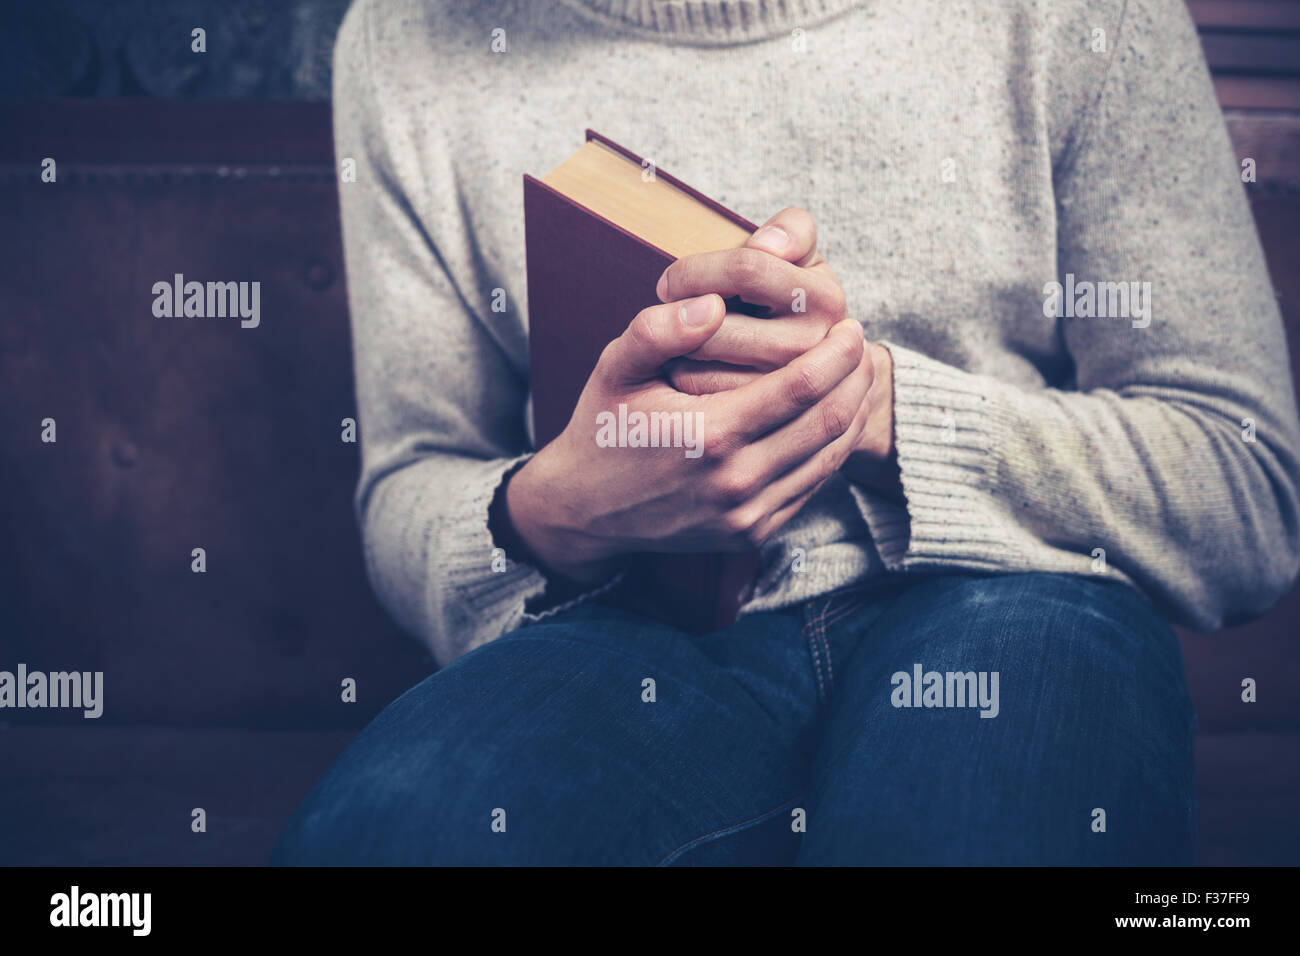 Nervous young man sitting on a sofa is clutching a book - Stock Image